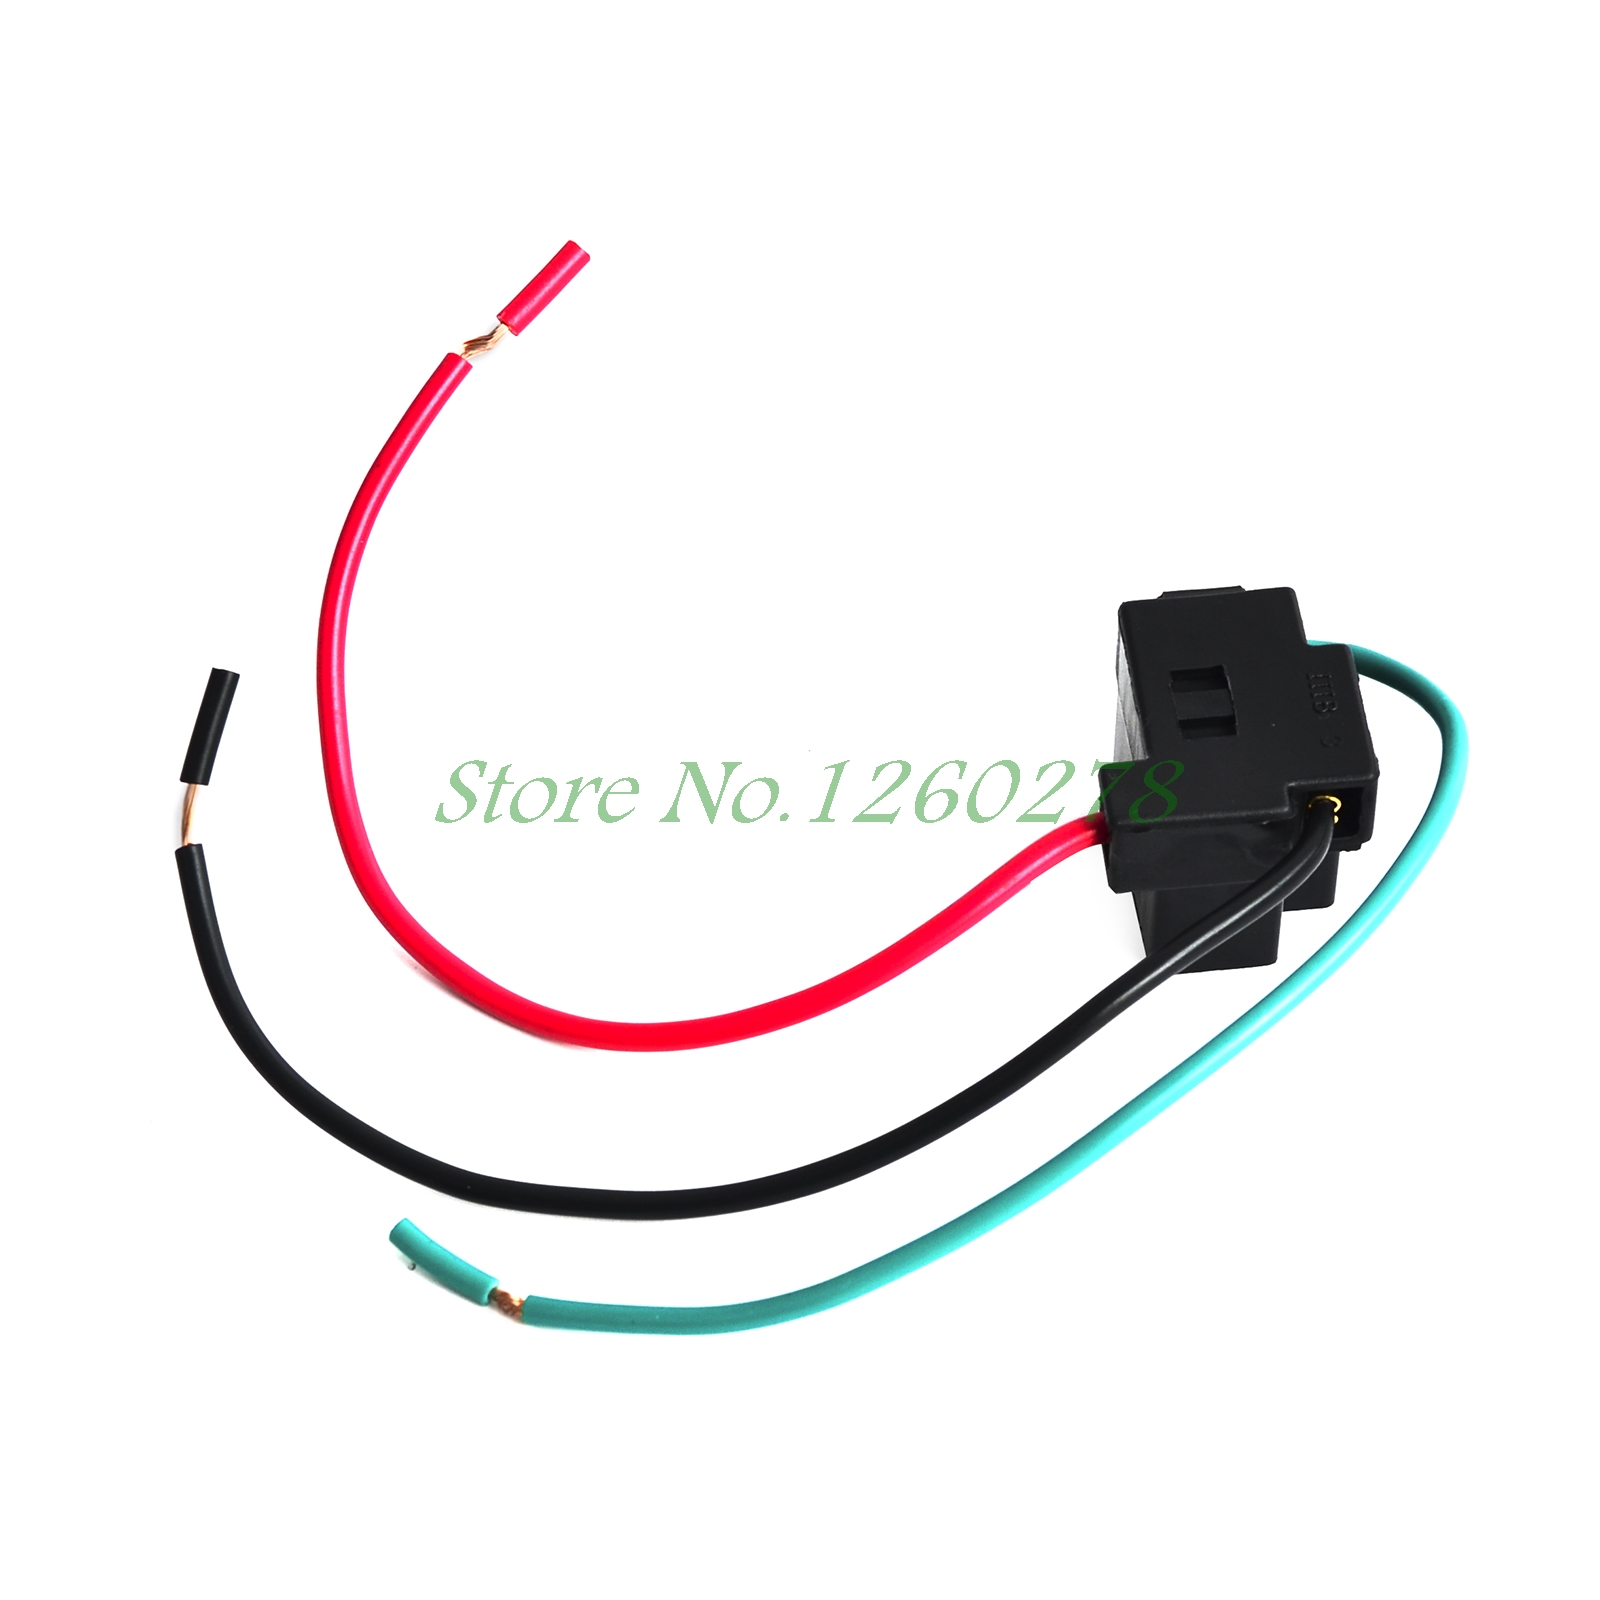 small resolution of 2pcs h4 female adapter wiring harness sockets wire harness connector for headlights in car headlight bulbs led from automobiles motorcycles on